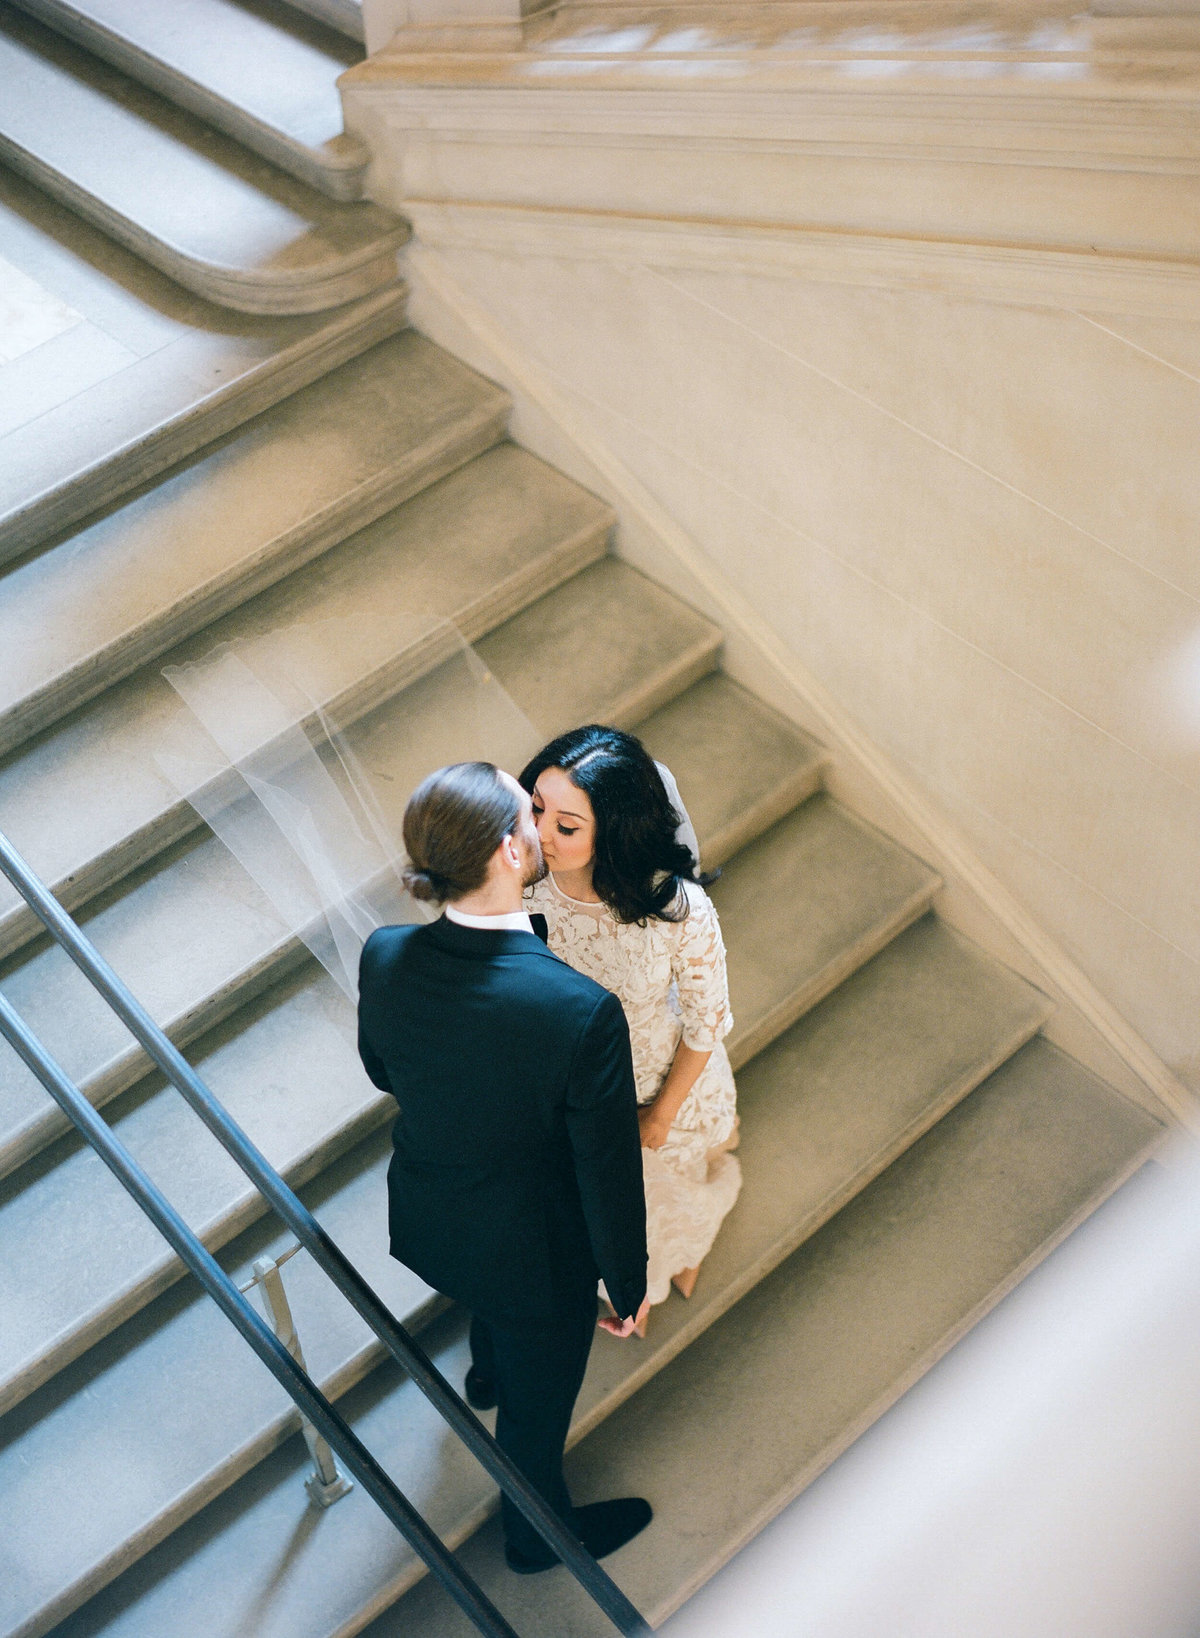 22-KTMerry-wedding-portrait-staircase-kiss